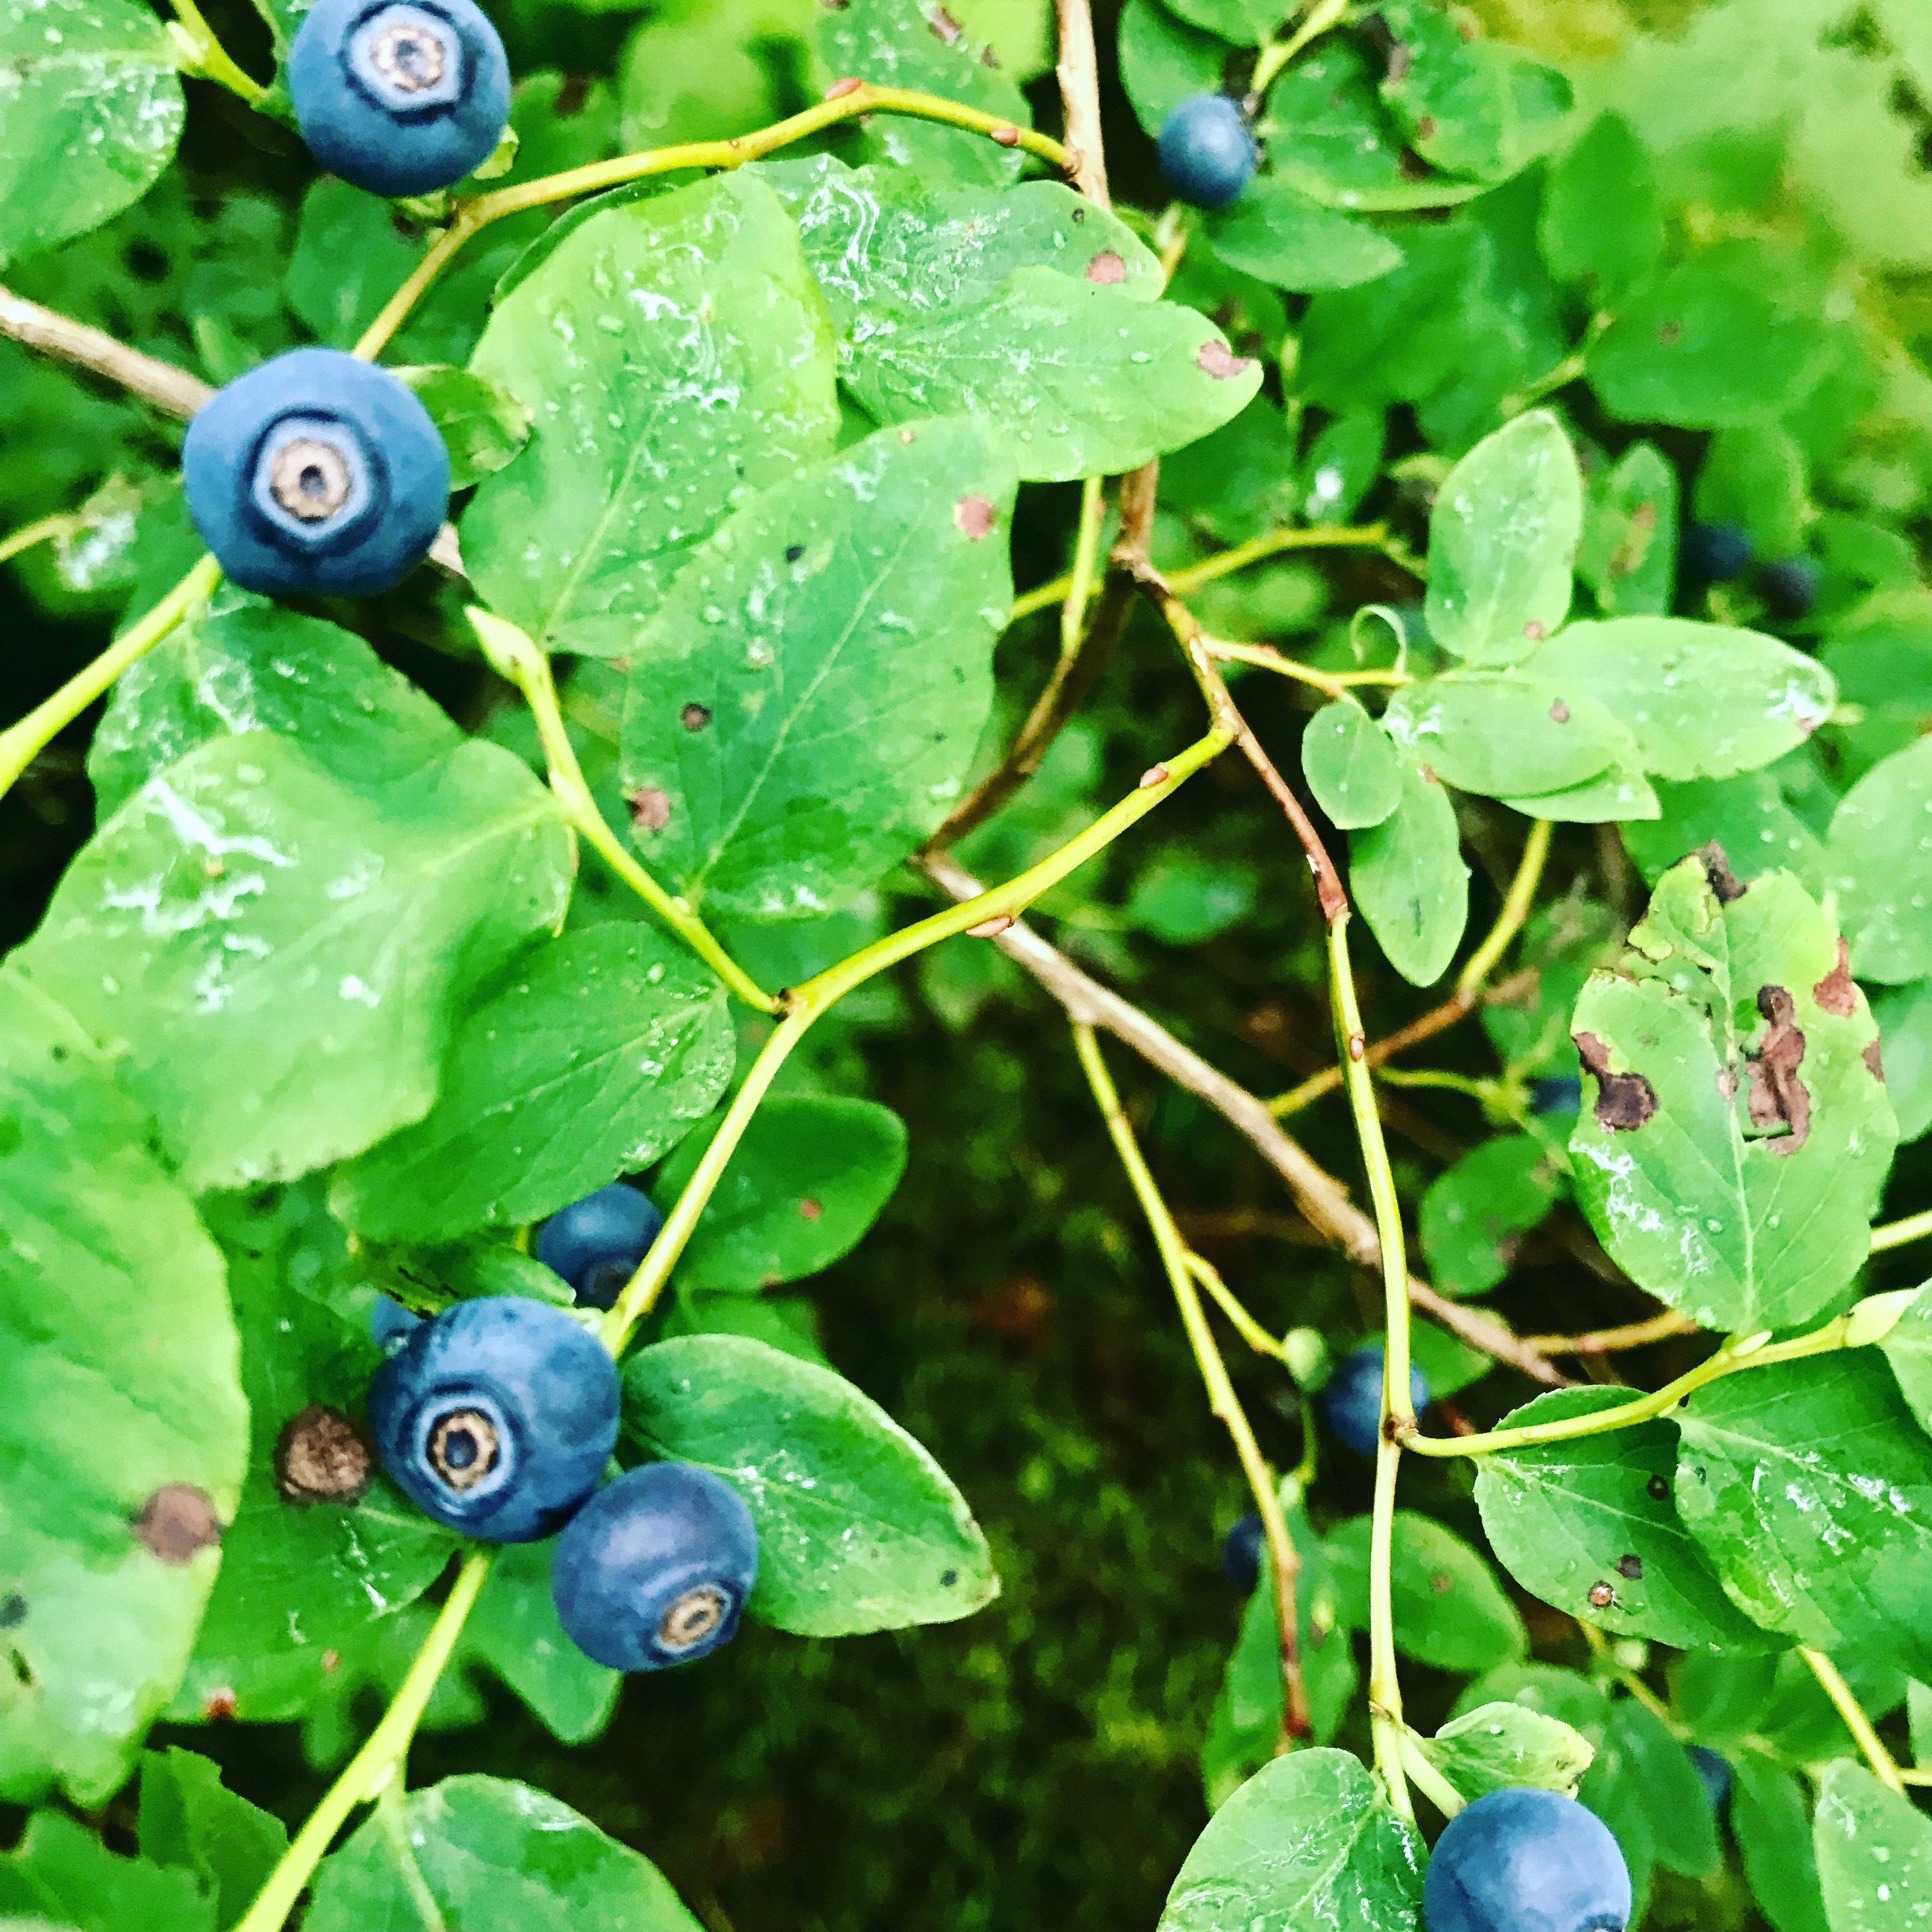 Vaccinium Ovalifolium, or Oval-leaf Blueberry. (Photo by Daysha Eaton/KMXT)